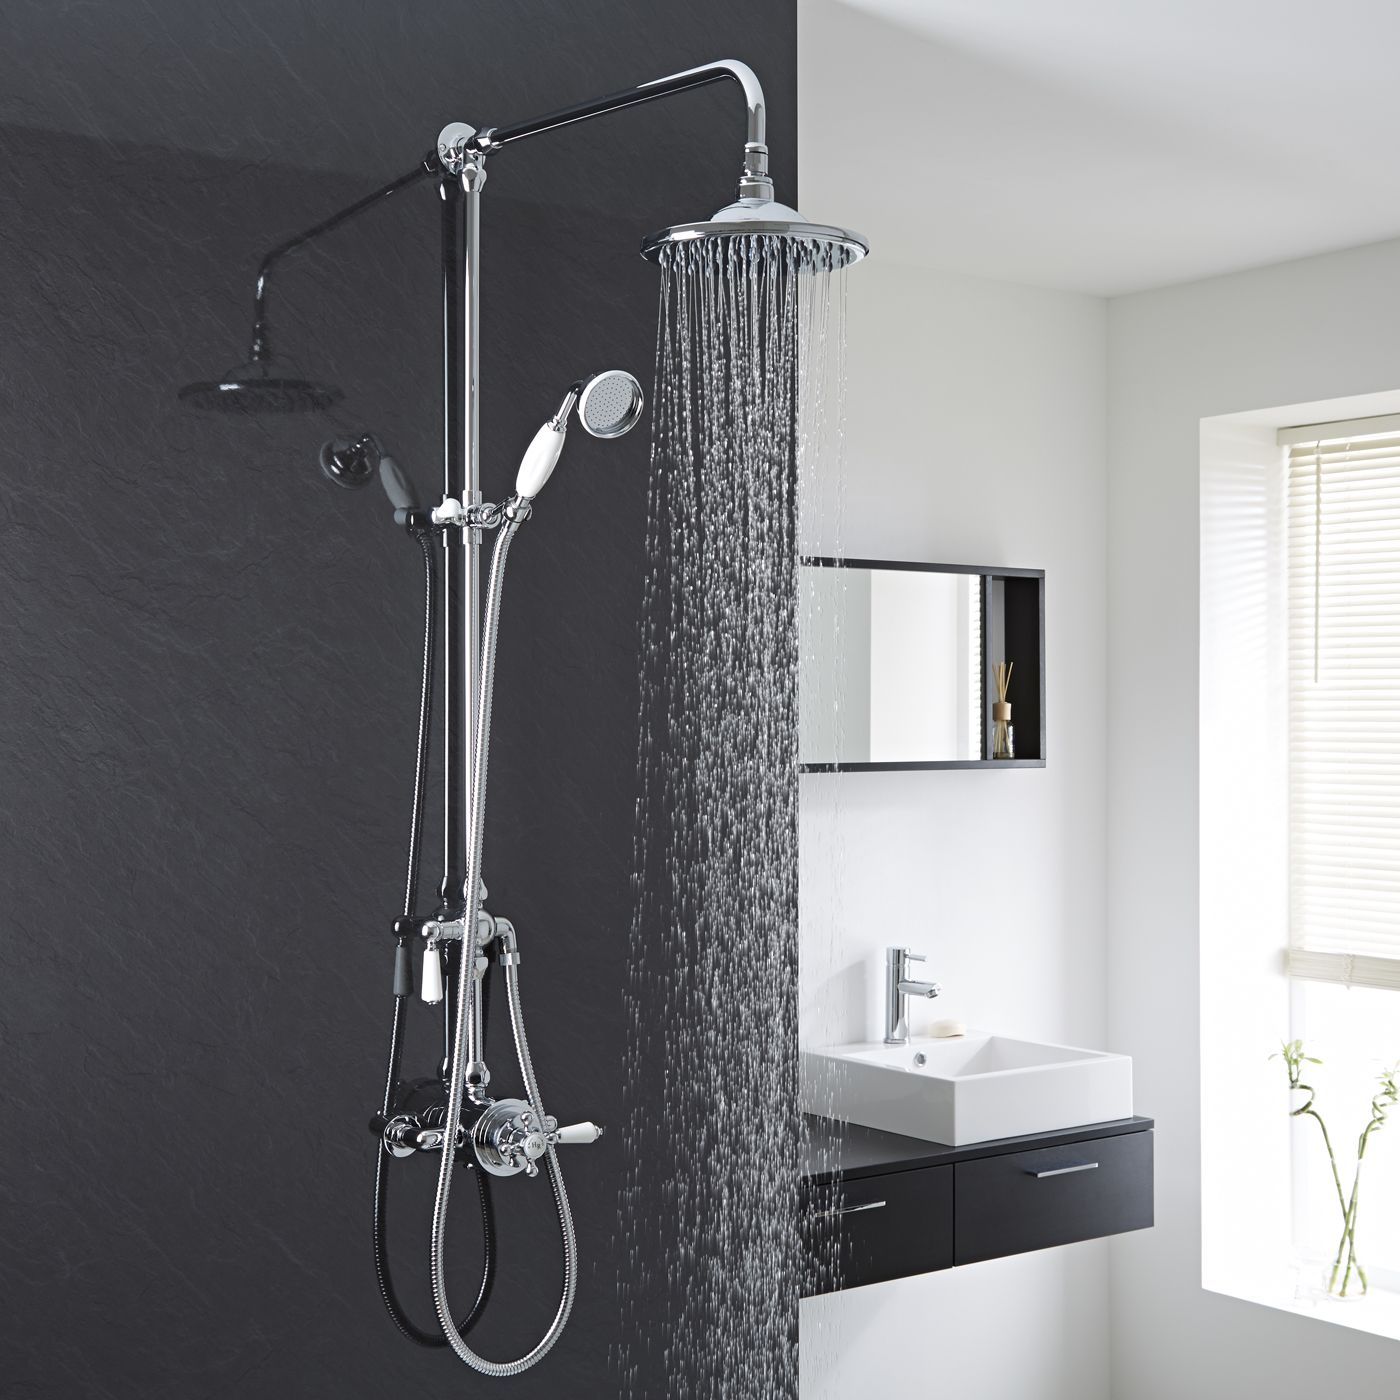 traditional exposed dual control thermostatic shower faucet valve with grand shower kit. Black Bedroom Furniture Sets. Home Design Ideas